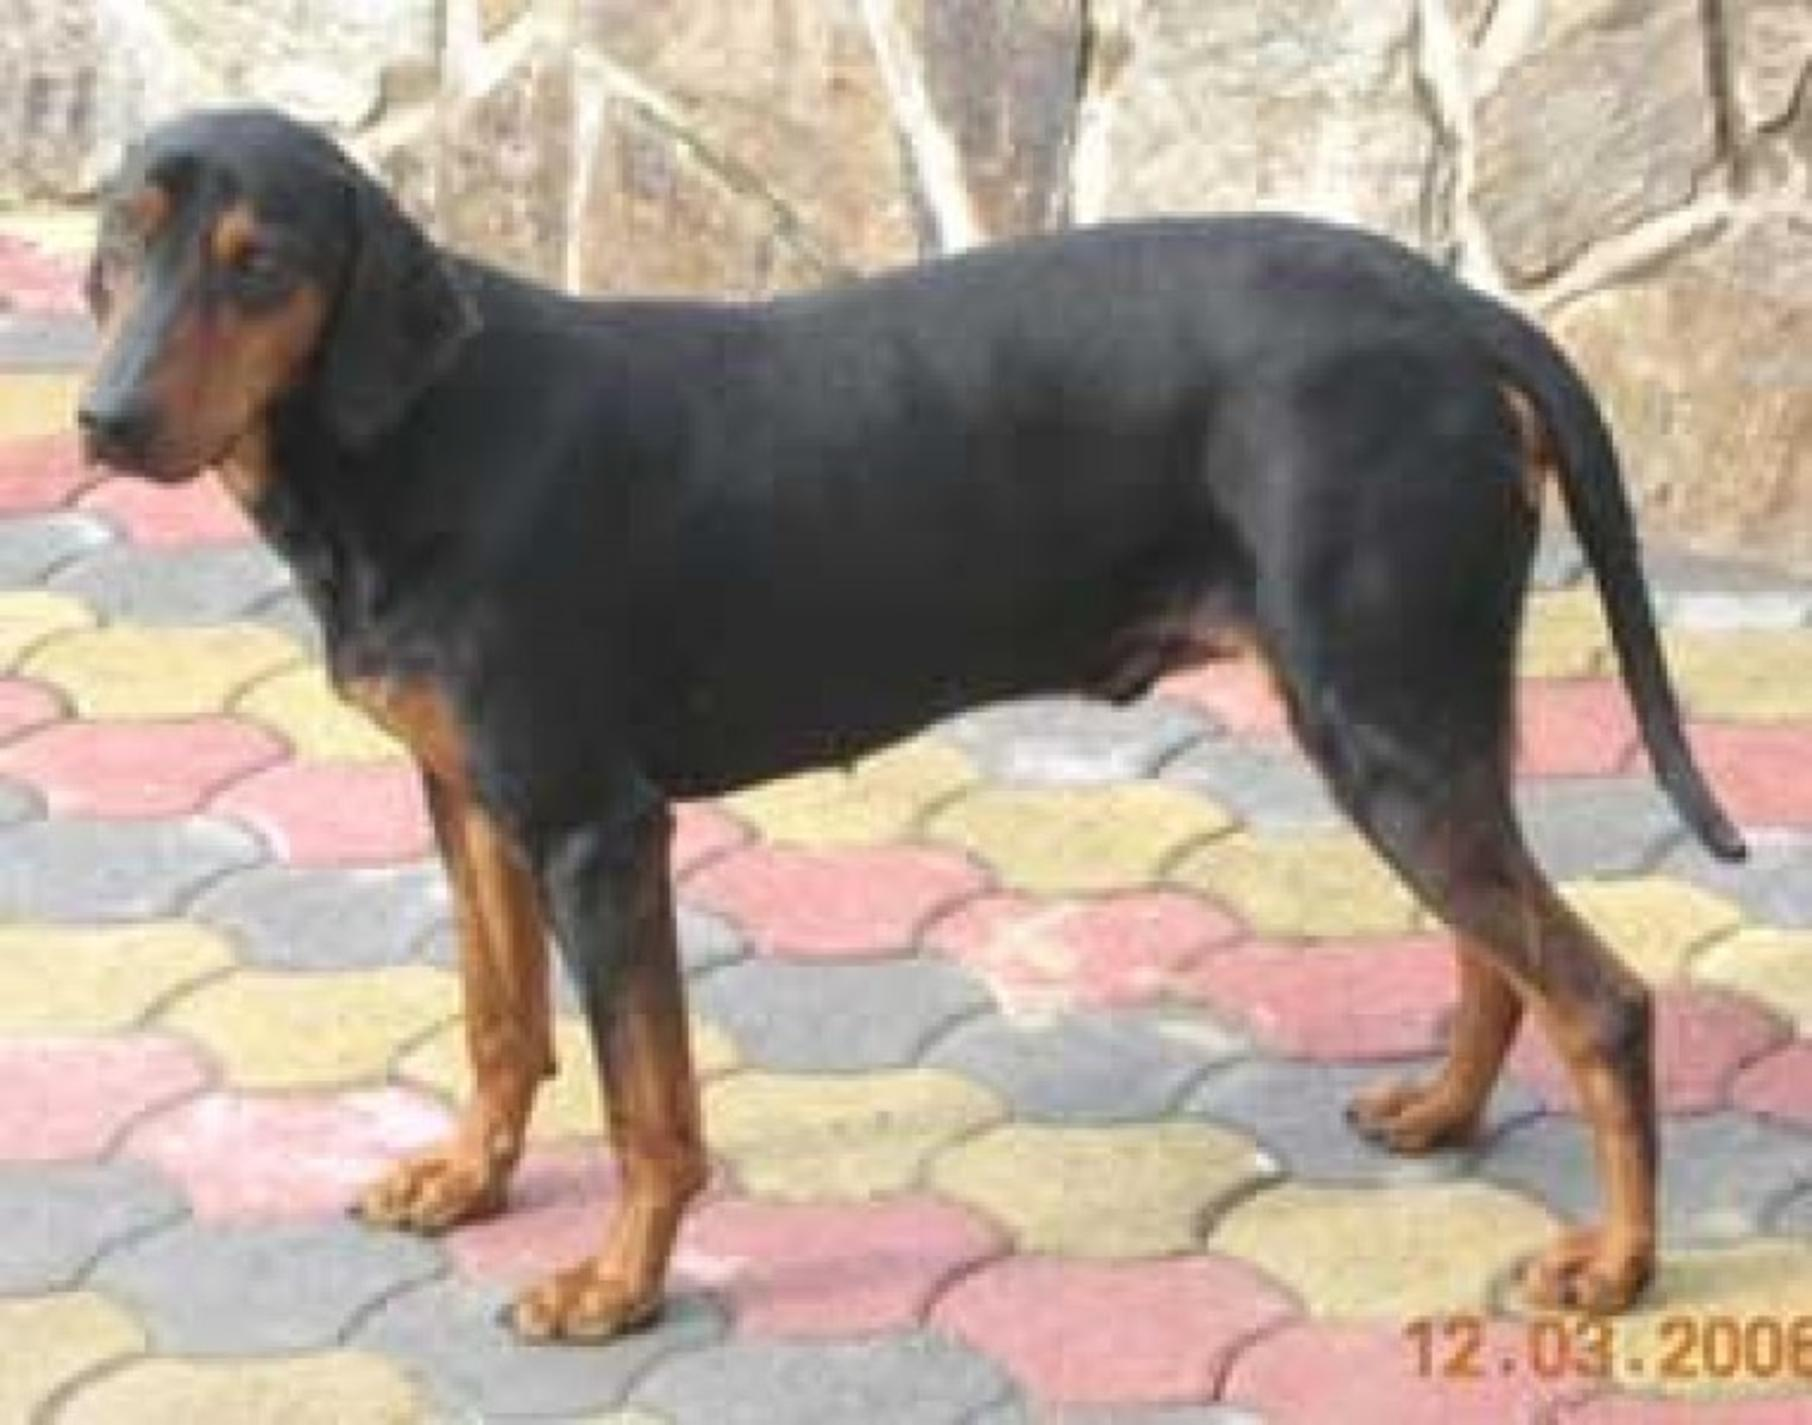 Montenegrin Mountain Hound Dog: Montenegrin Montenegrin Mountain Hound Dog Breed